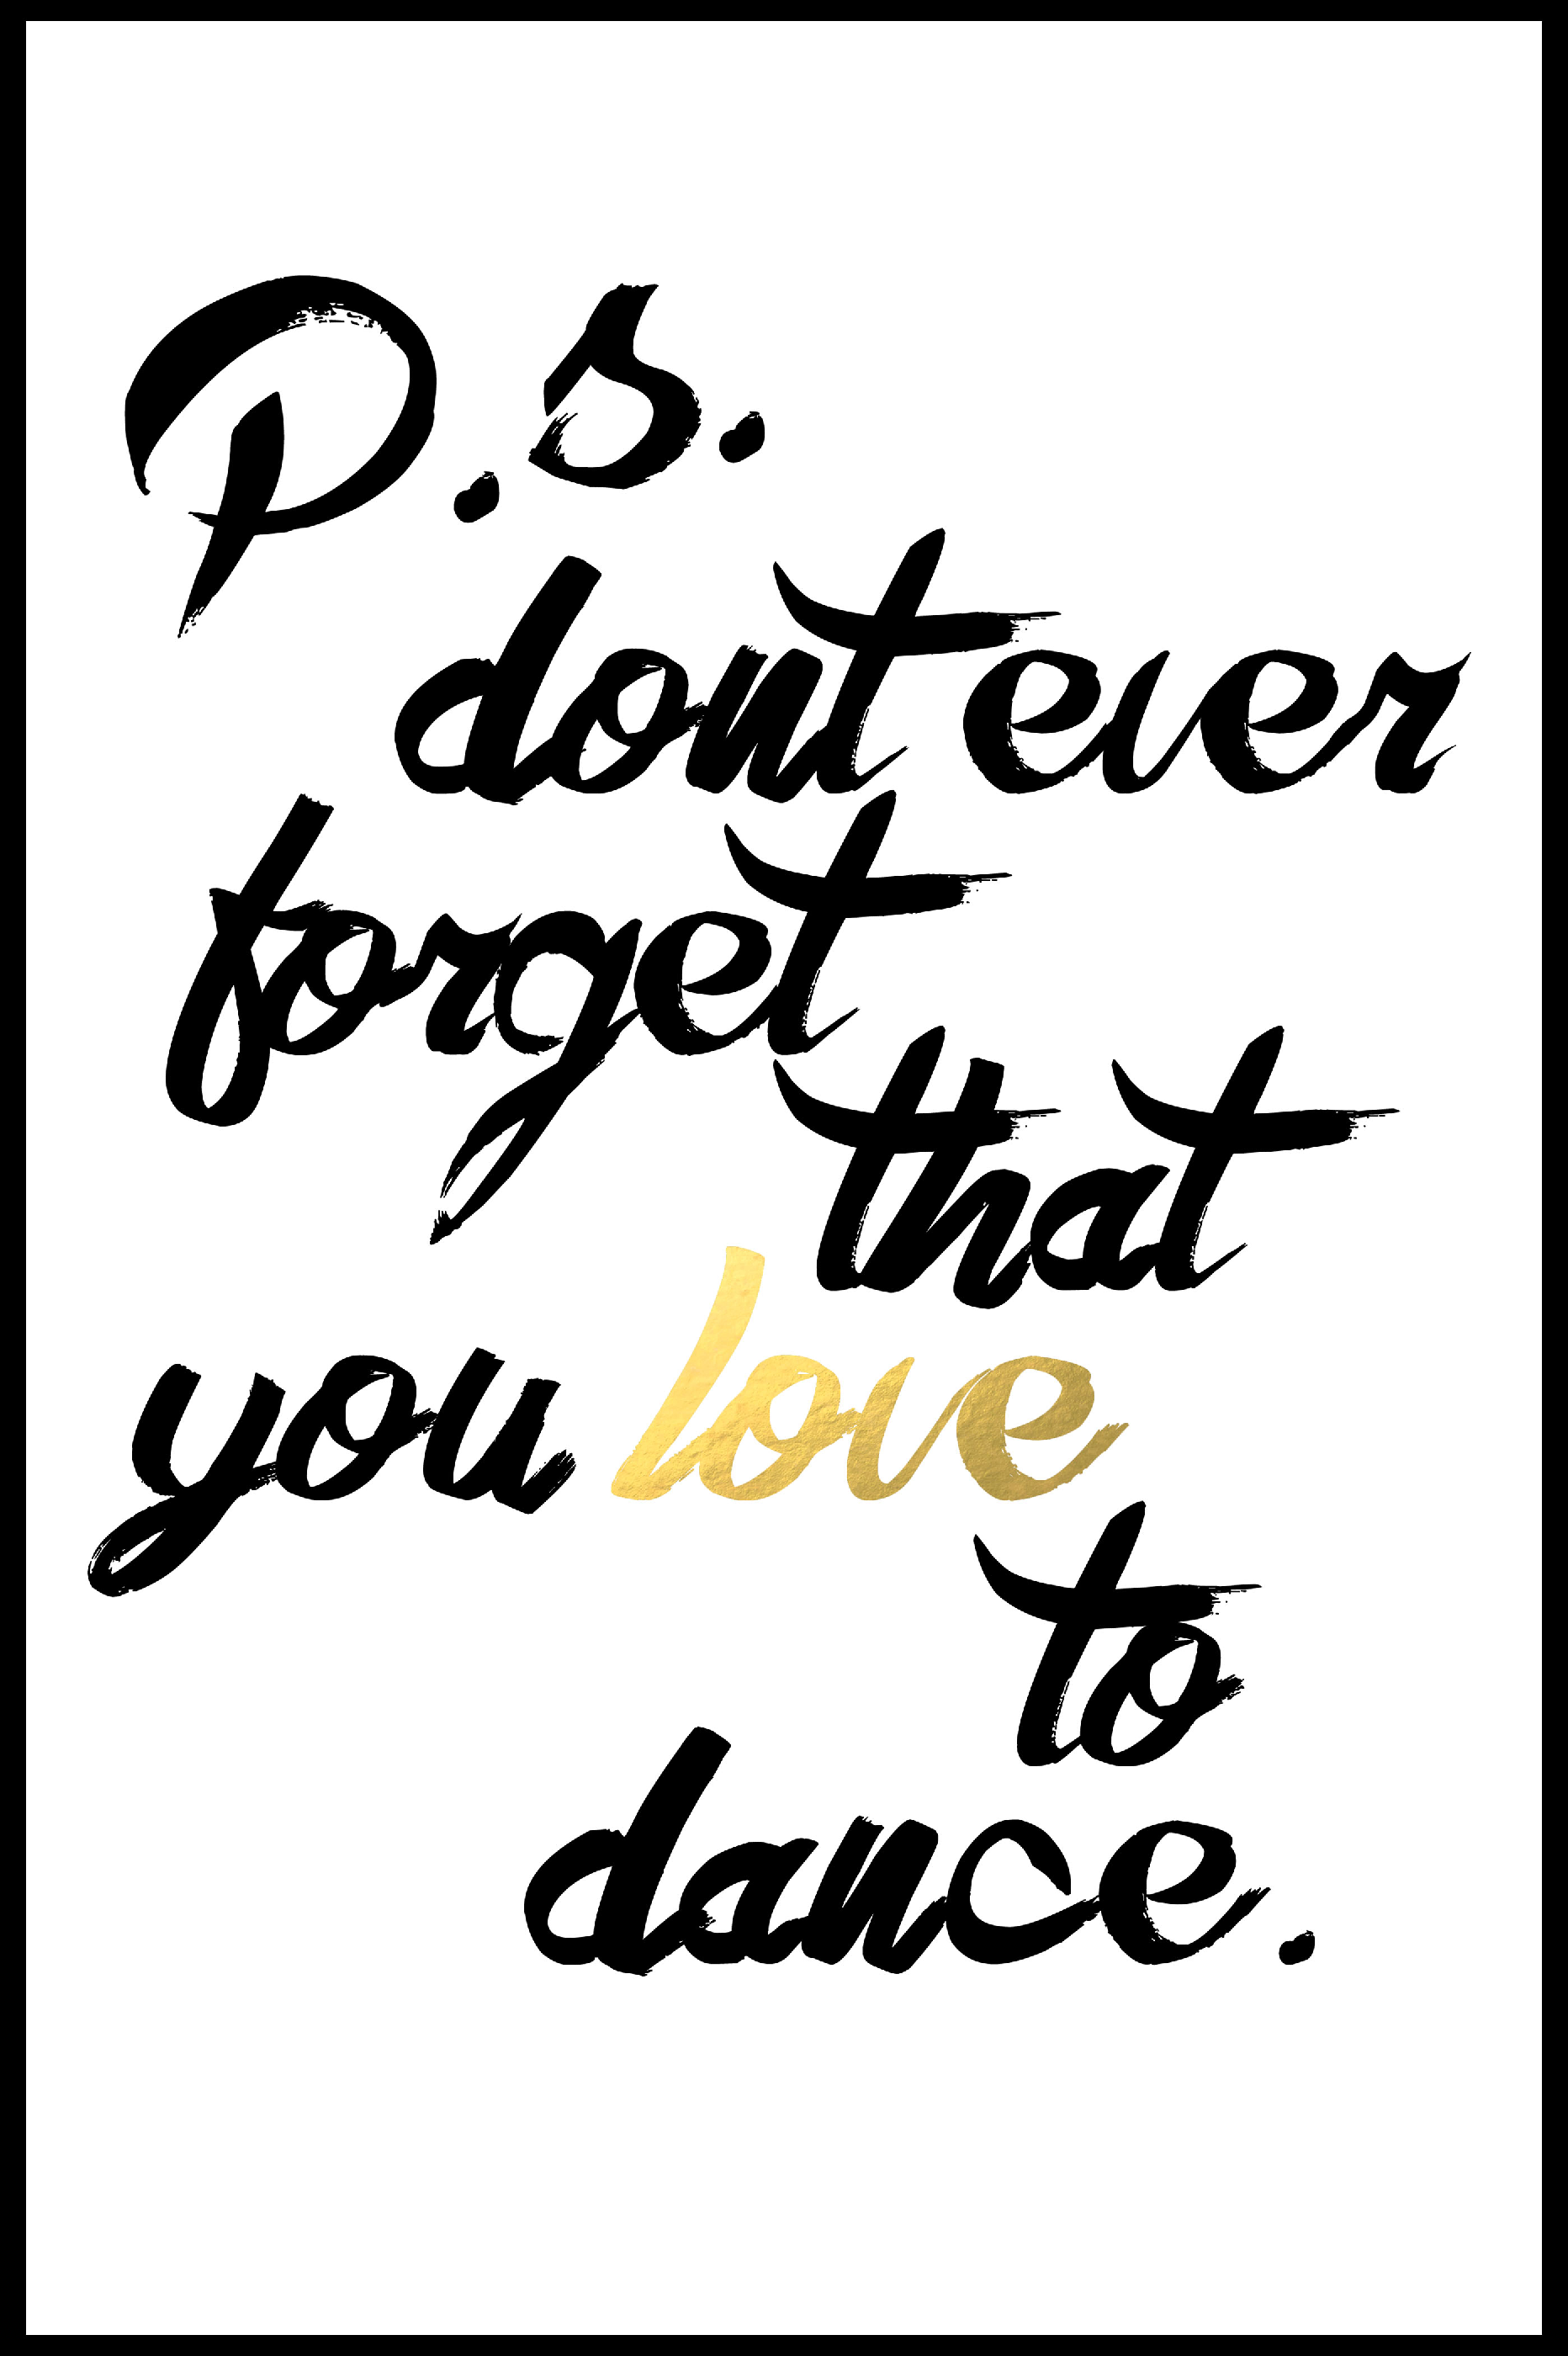 Inspirational Dance Quotes Love To Dance  Dance Pinterest  Dancing Dancing Quotes And